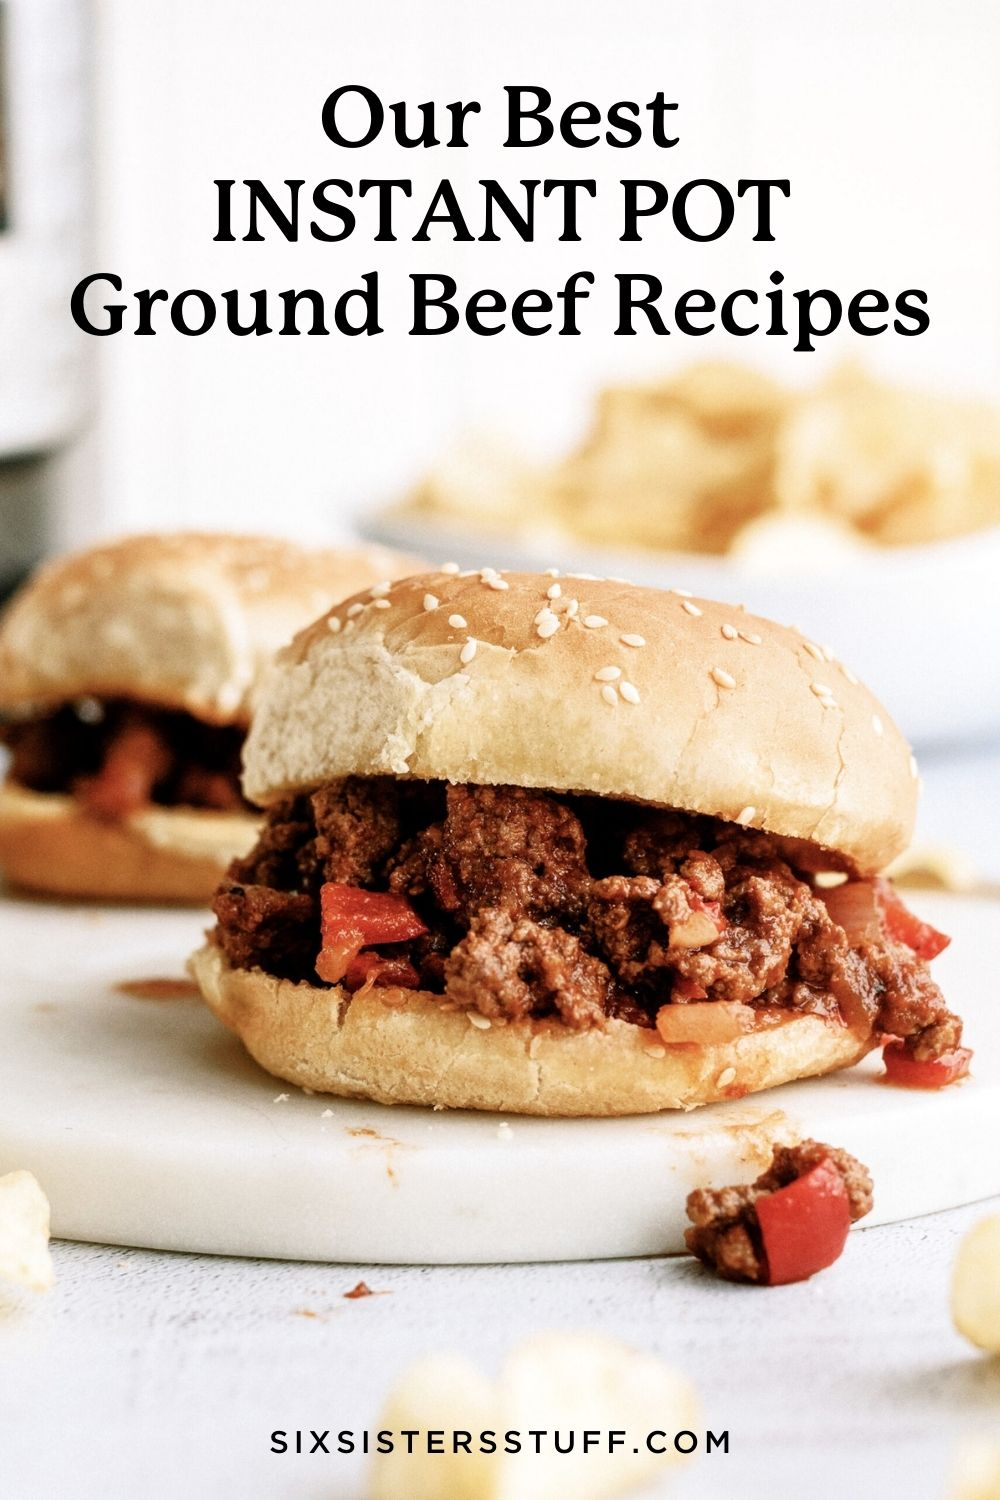 27 of the Best Instant Pot Ground Beef Recipes